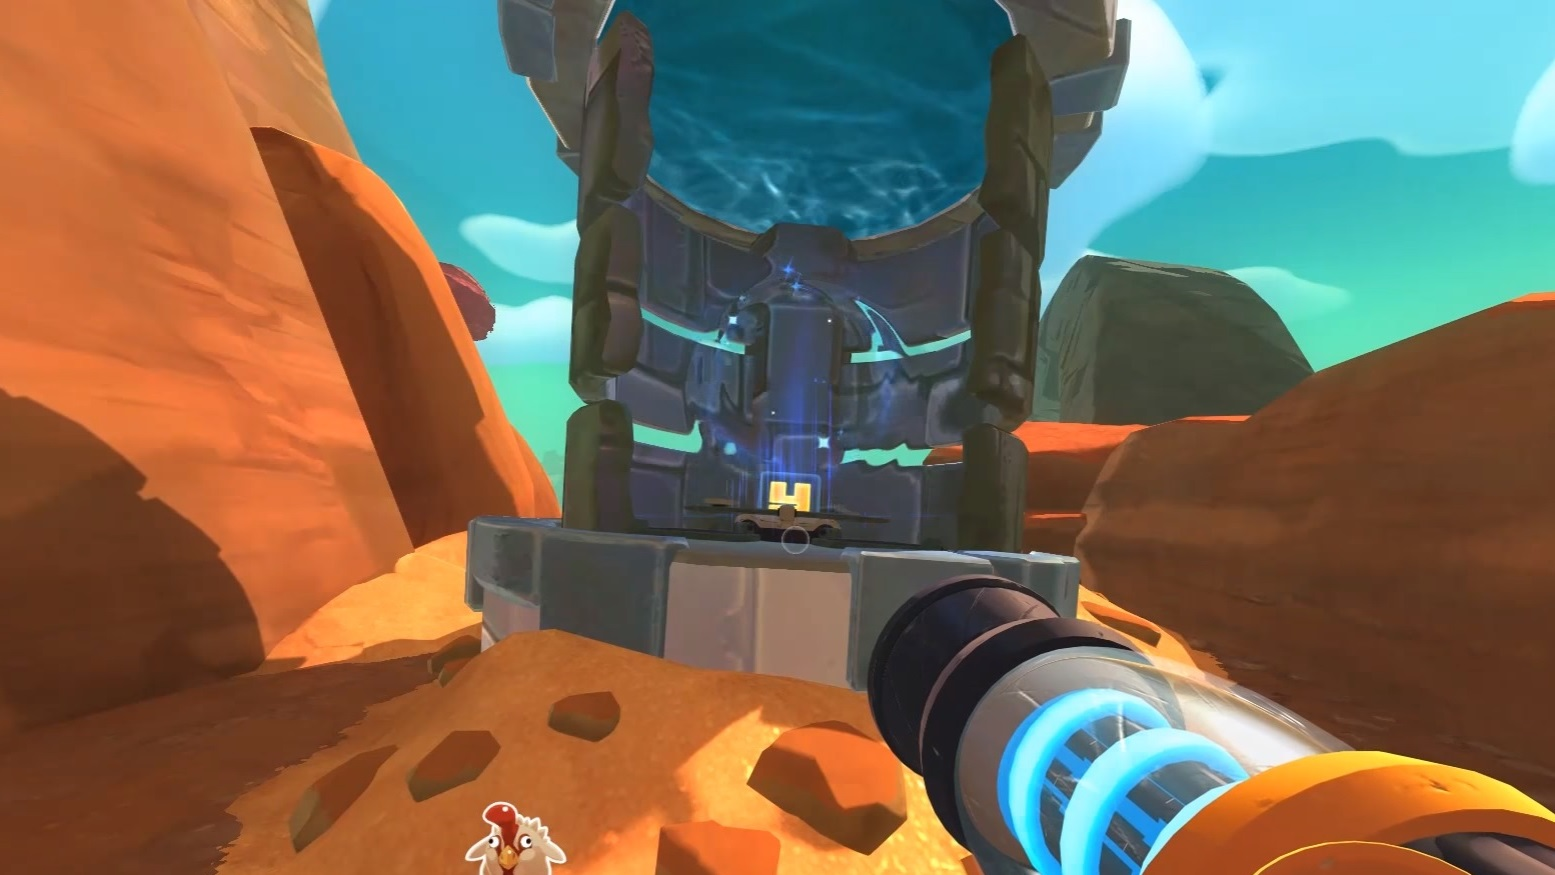 Ring Island Vault - All Hidden vault locations in Slime Rancher